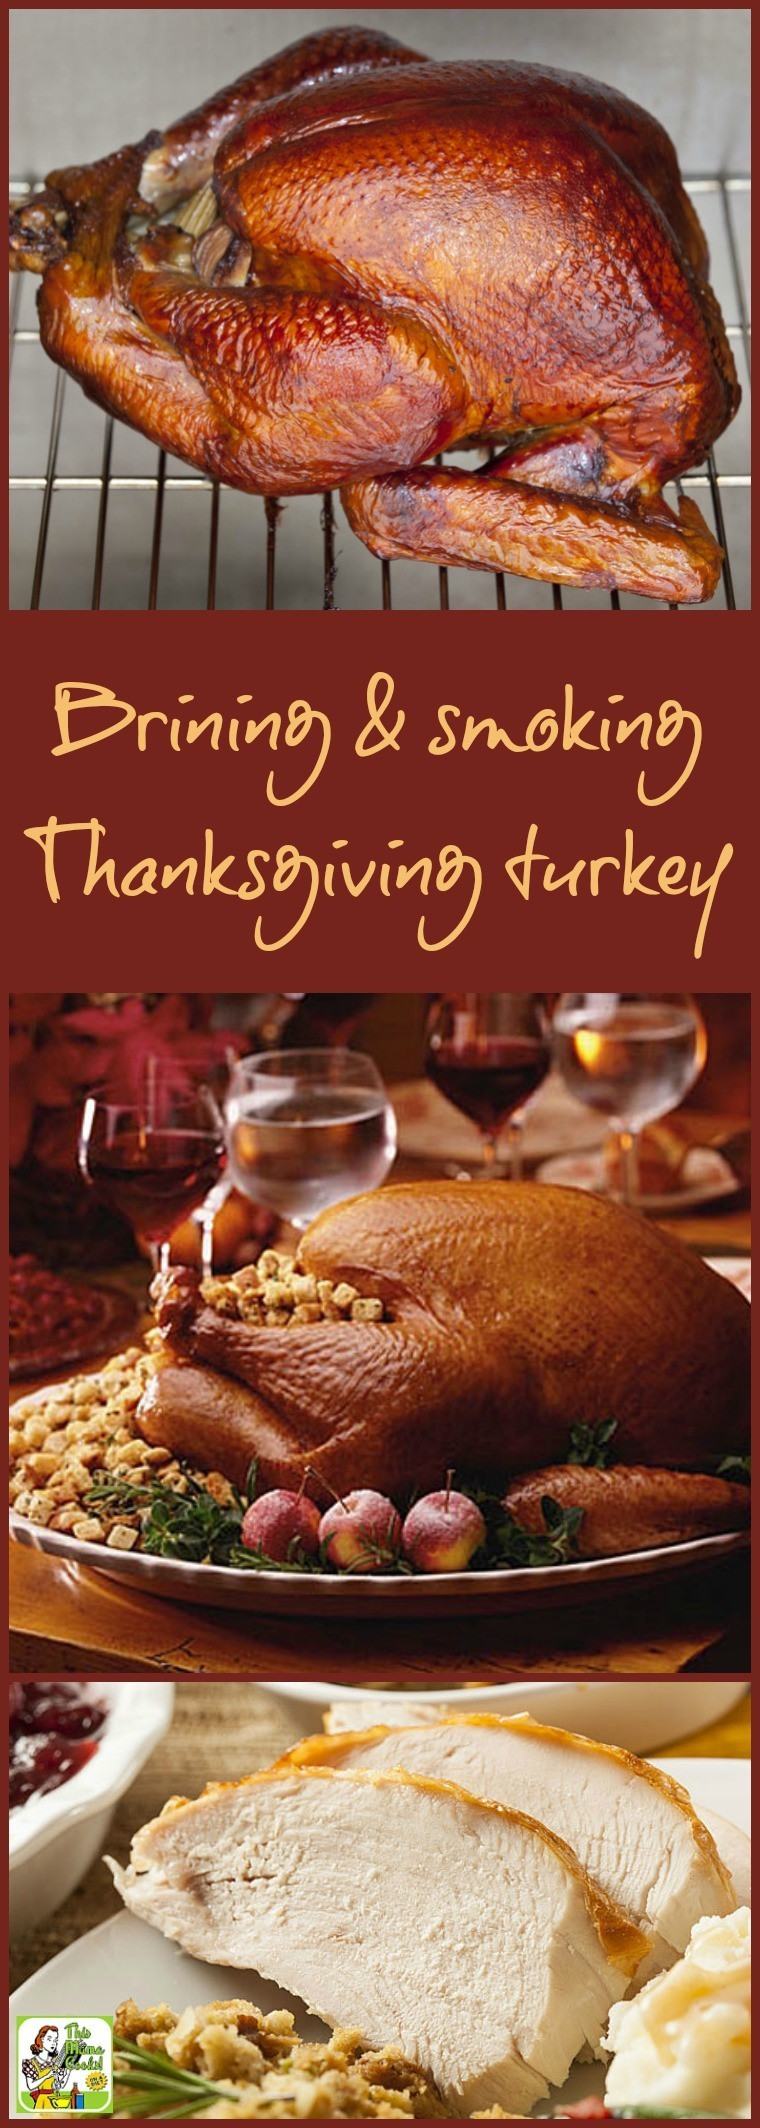 Smoked Turkey For Thanksgiving  Brining and smoking your Thanksgiving turkey